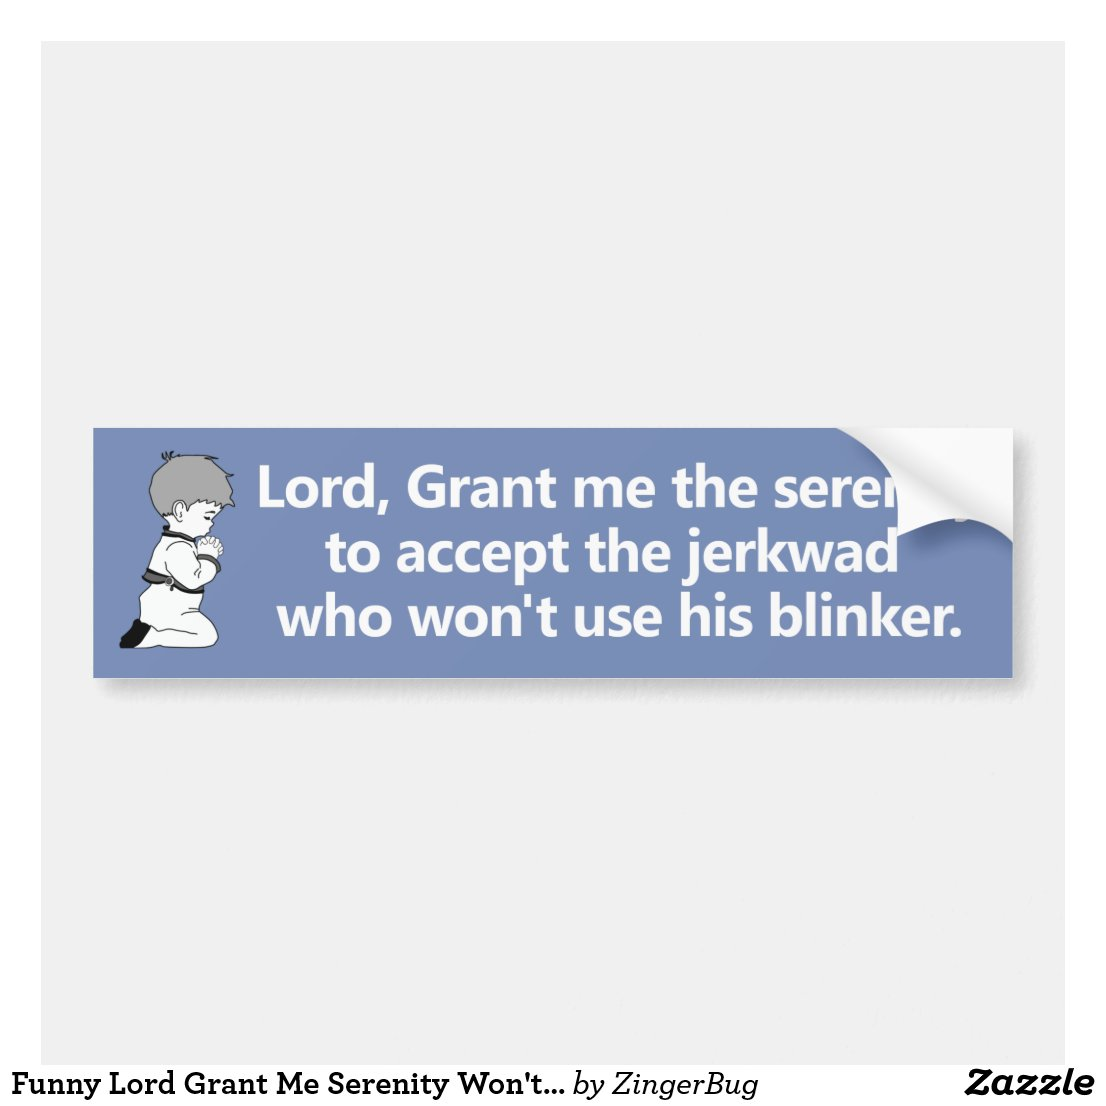 Grant me the serenity funny bumper sticker